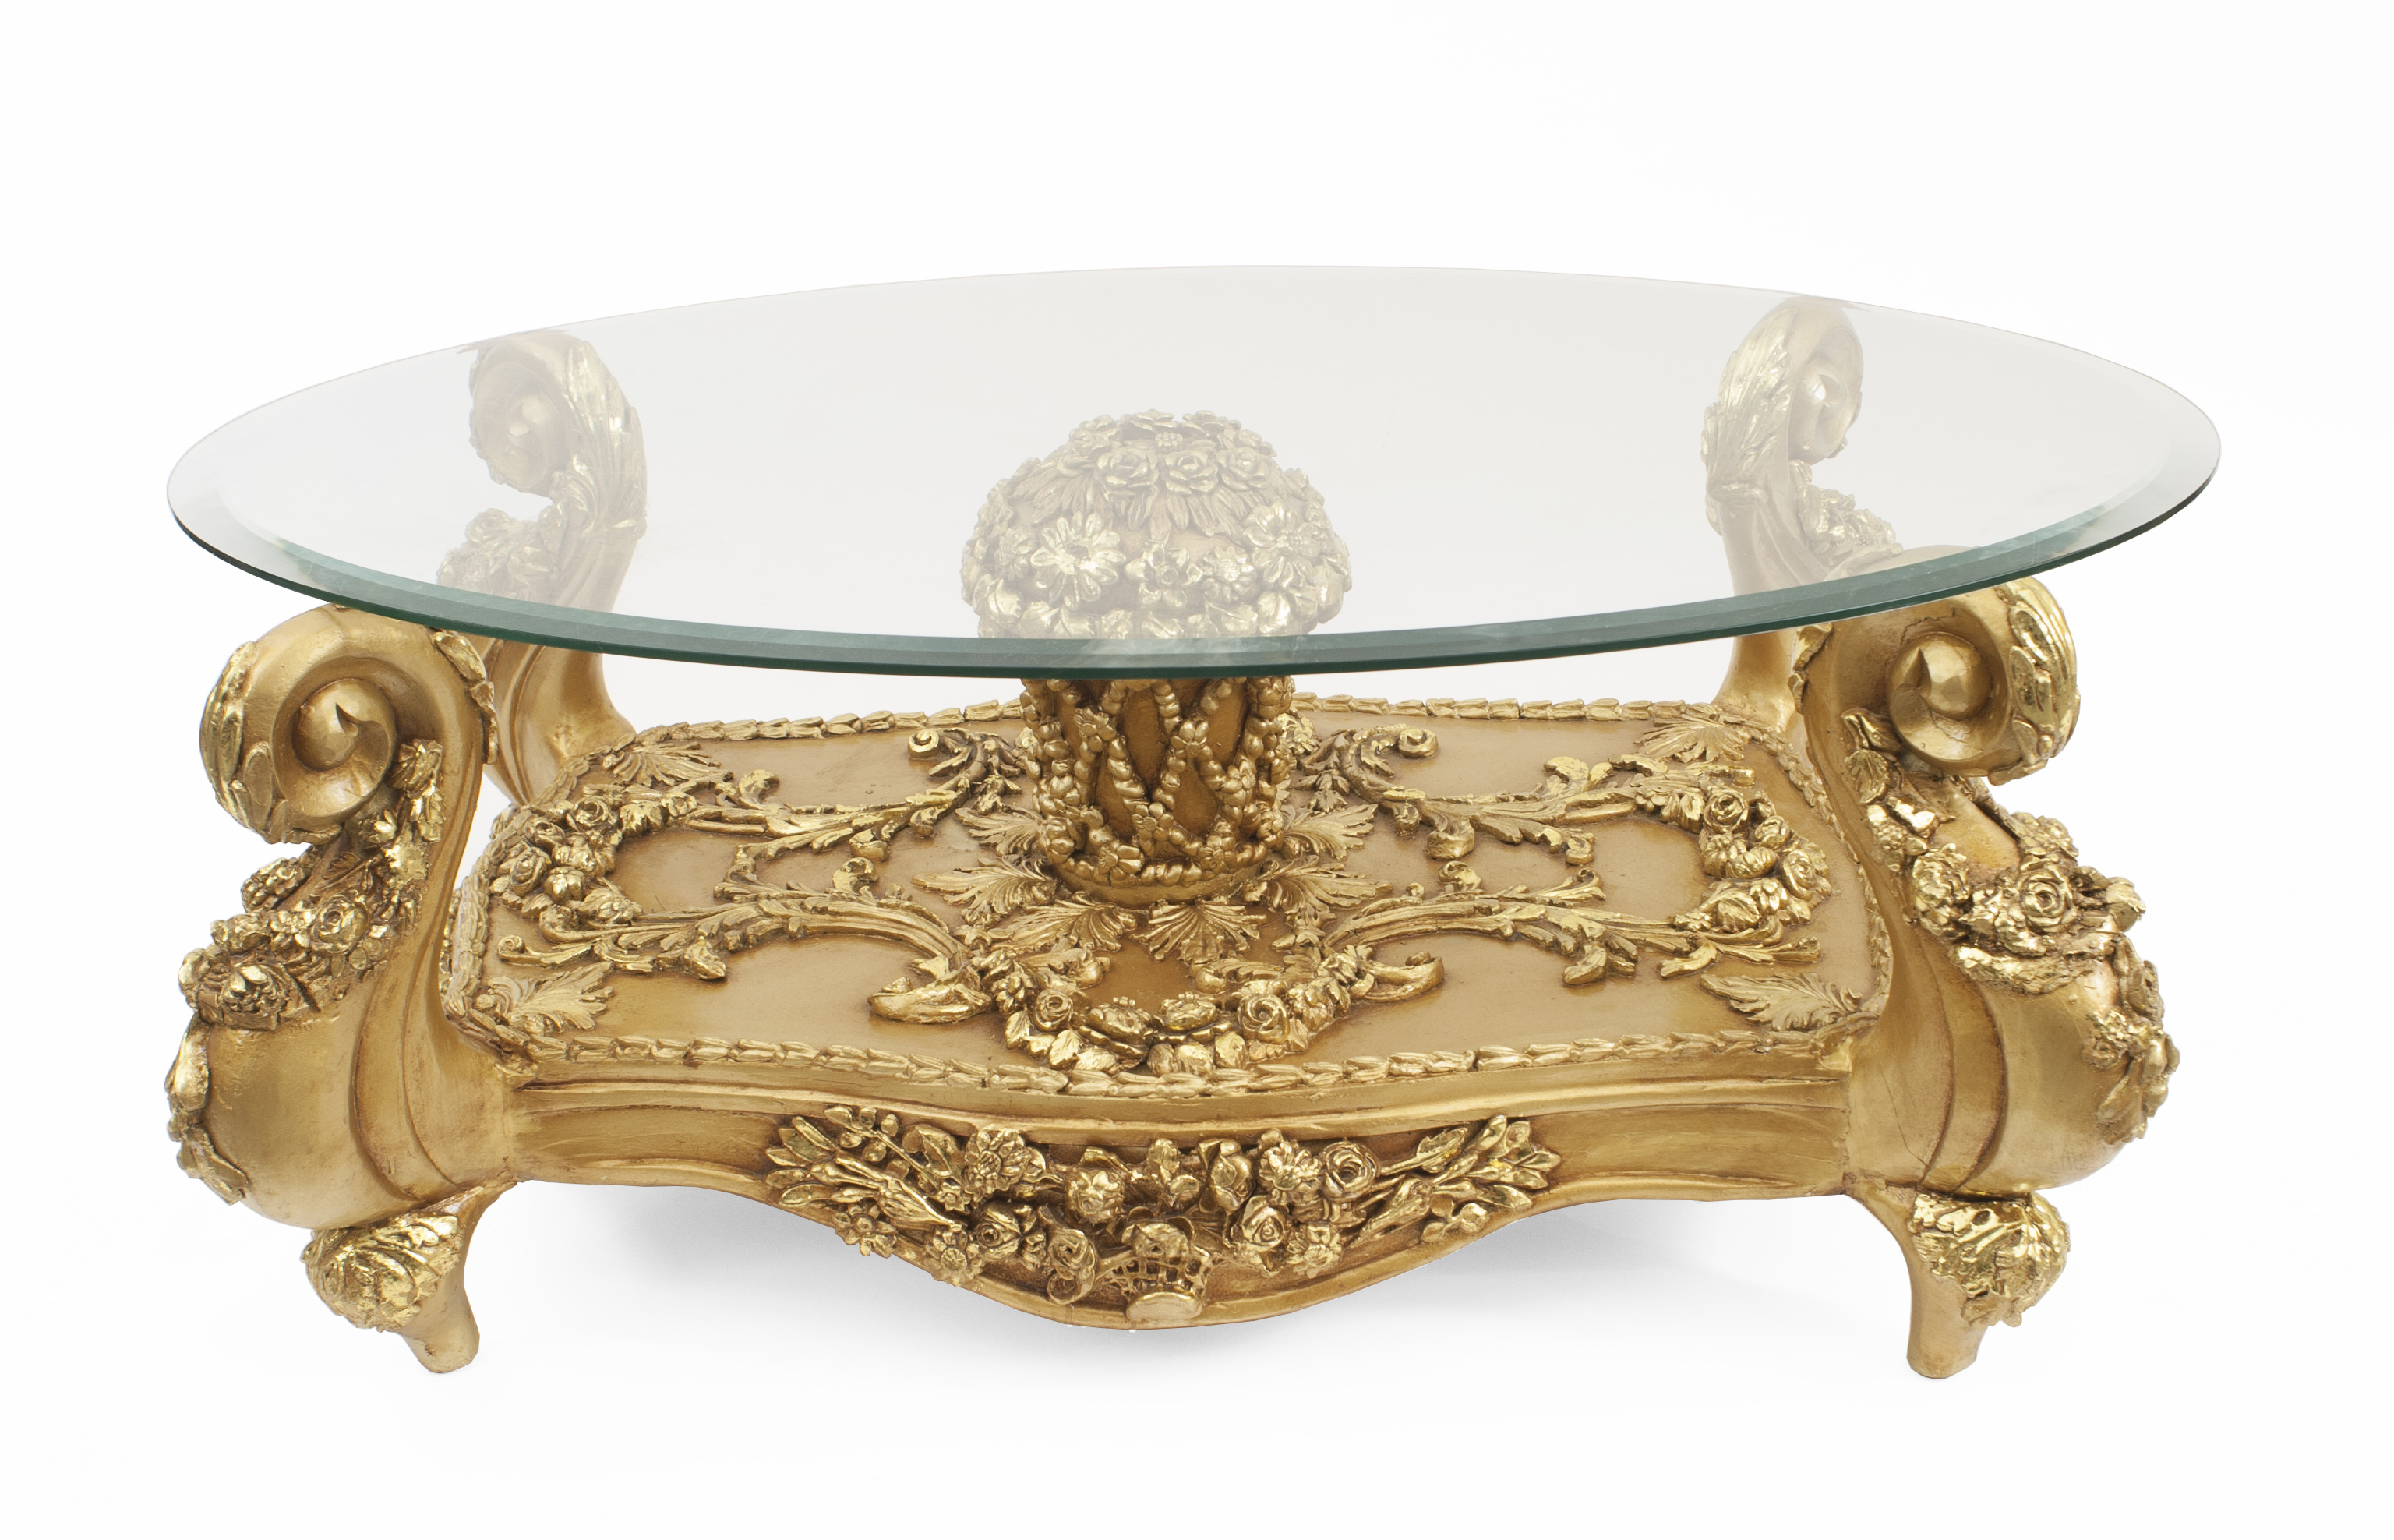 Tremendous Italian Baroque Gilt Wood And Glass Coffee Table 1 Newel Interior Design Ideas Clesiryabchikinfo